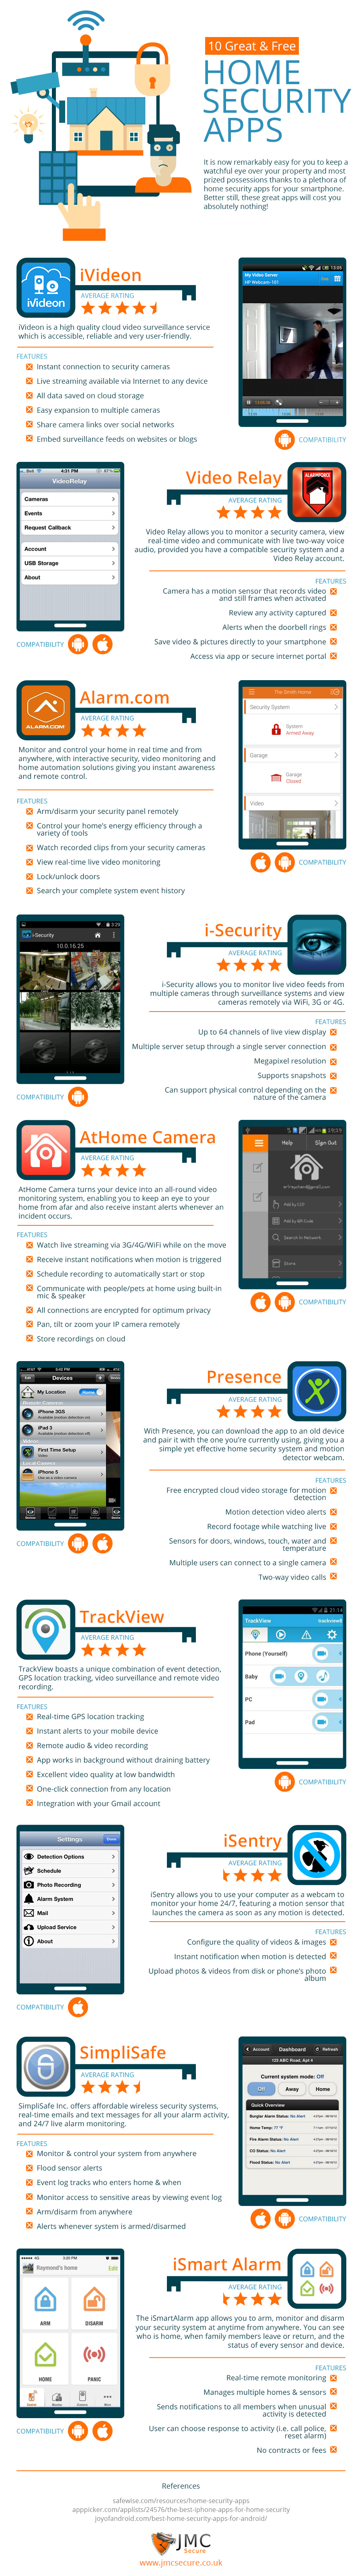 10 Great & Free Home Security Apps - Infographic - Image 1